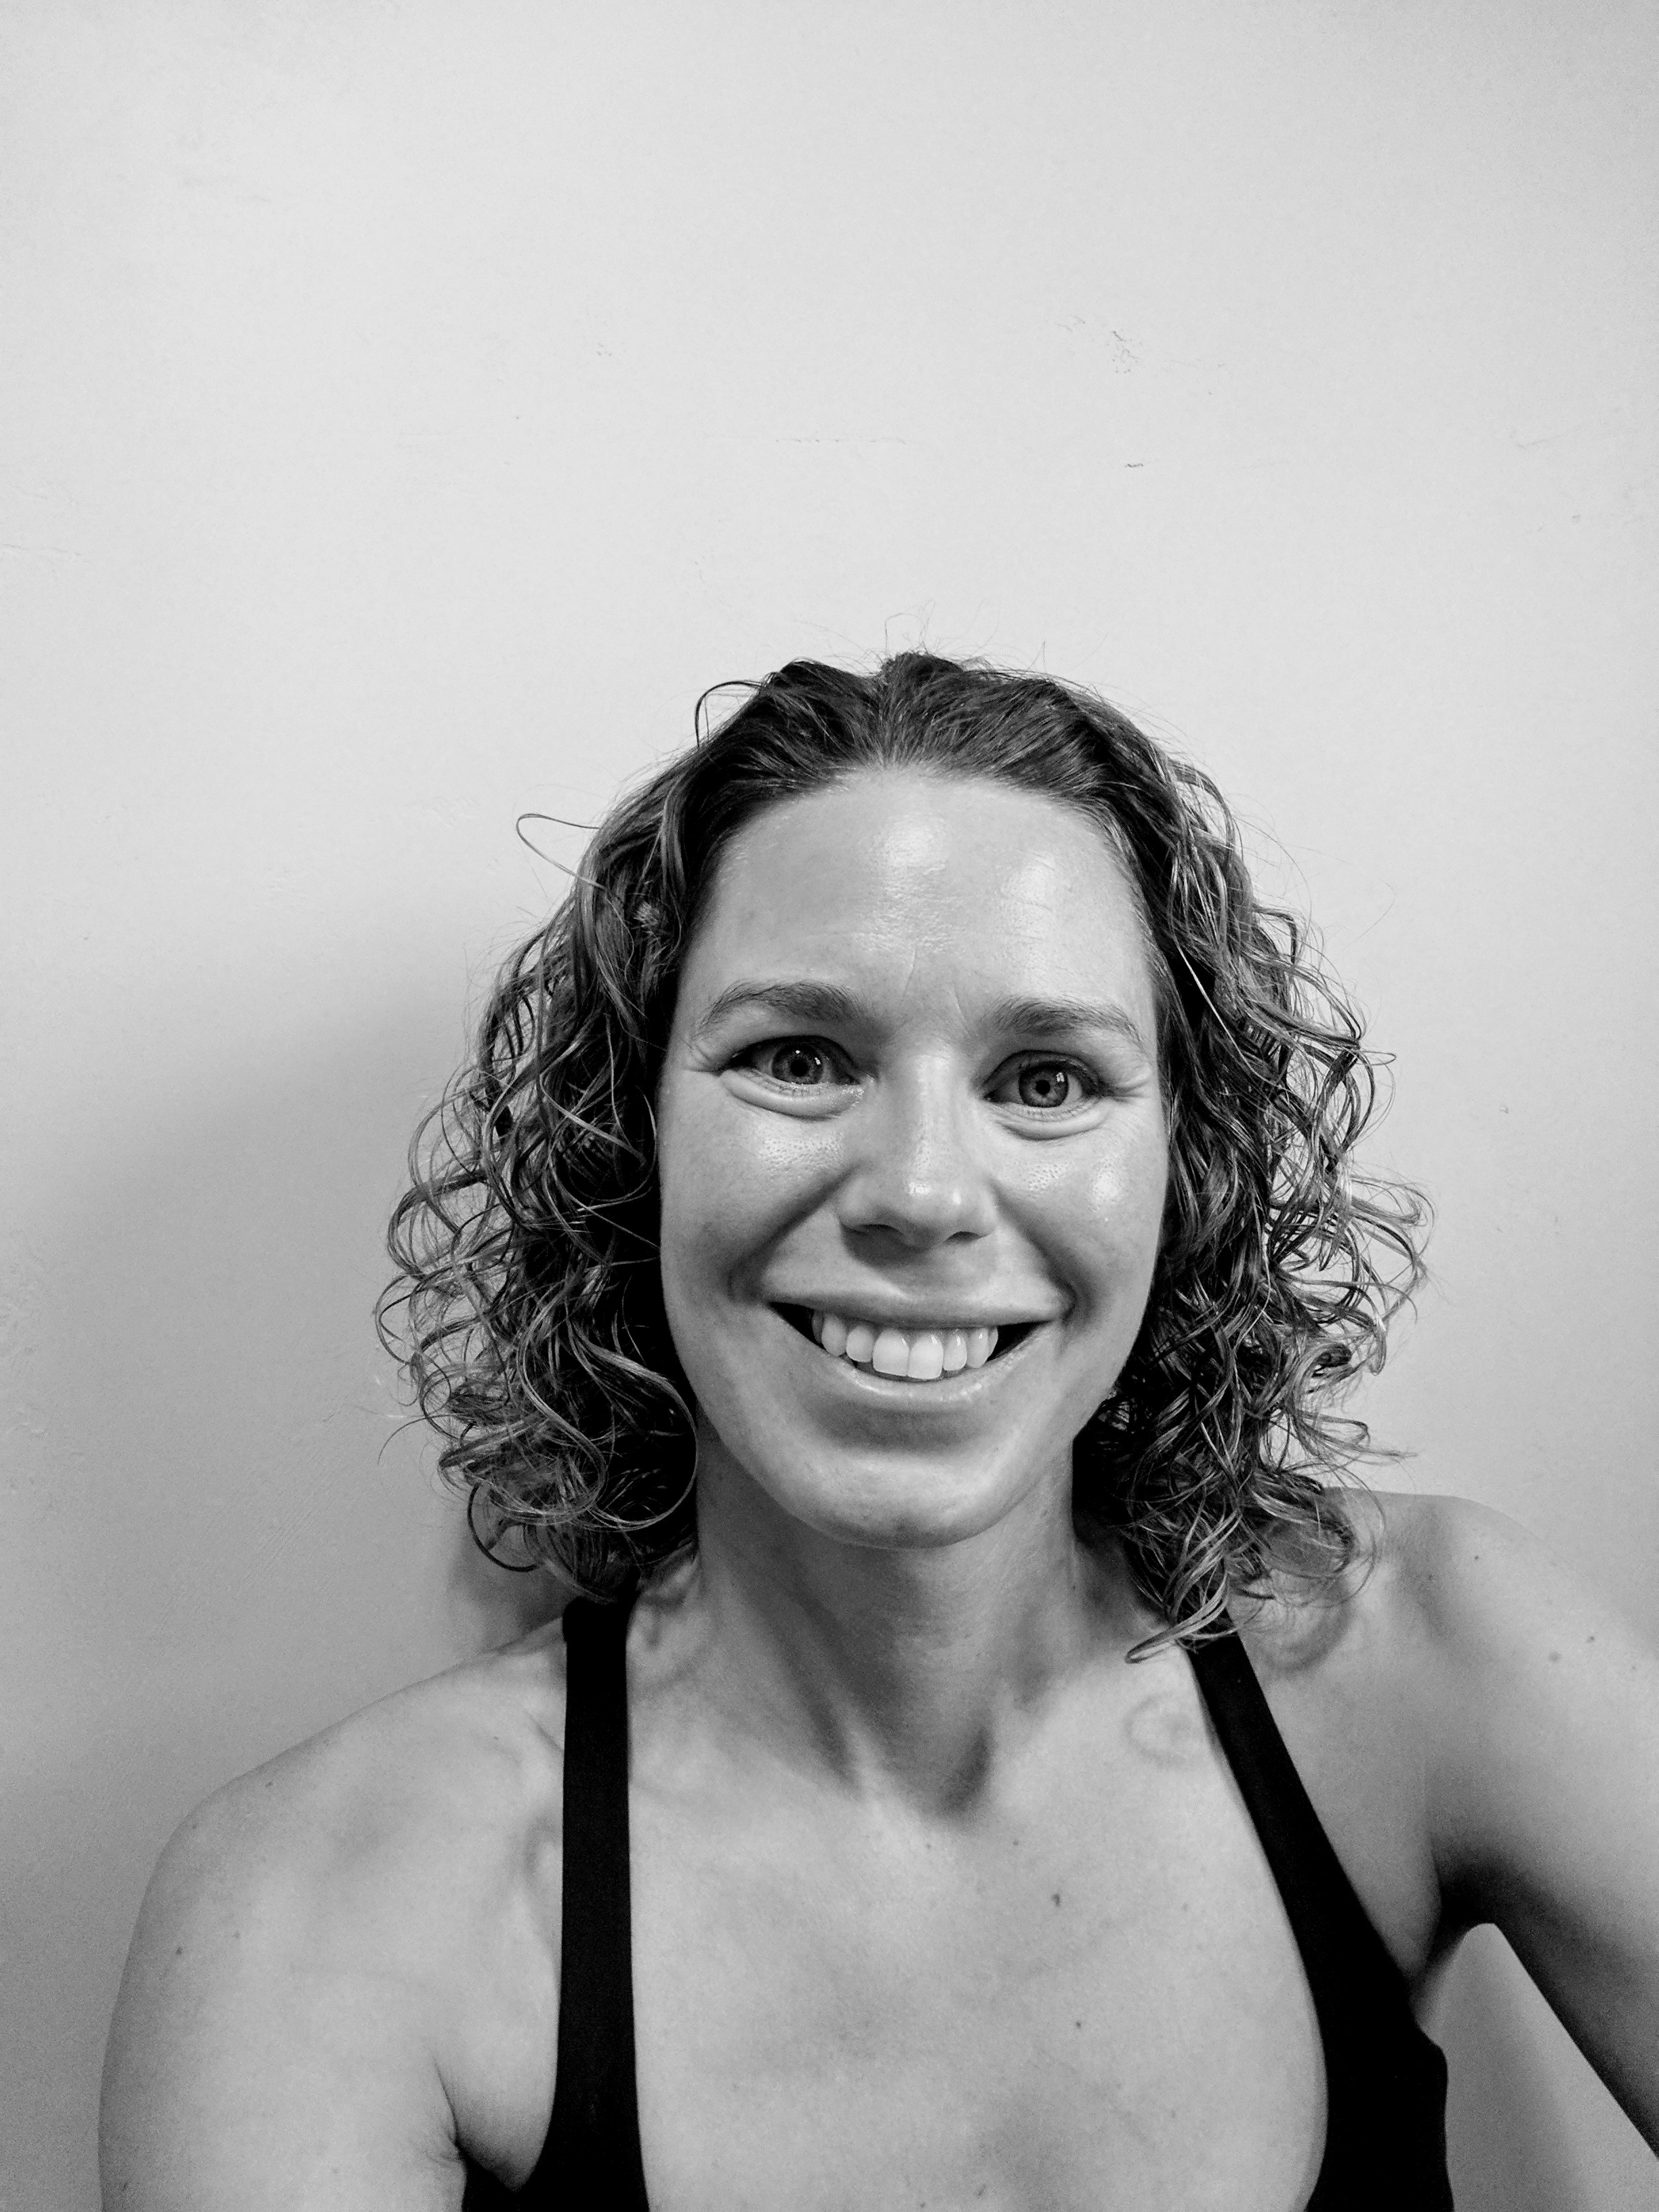 - Misty H.favorite yoga pose: dancer'sleast favorite yoga pose: camelteaching style a good balance of being a physical challenge, yet still accessible for anyone.shark diving, bungee jumping, or sky diving: sky divingInsta: @mistysunray